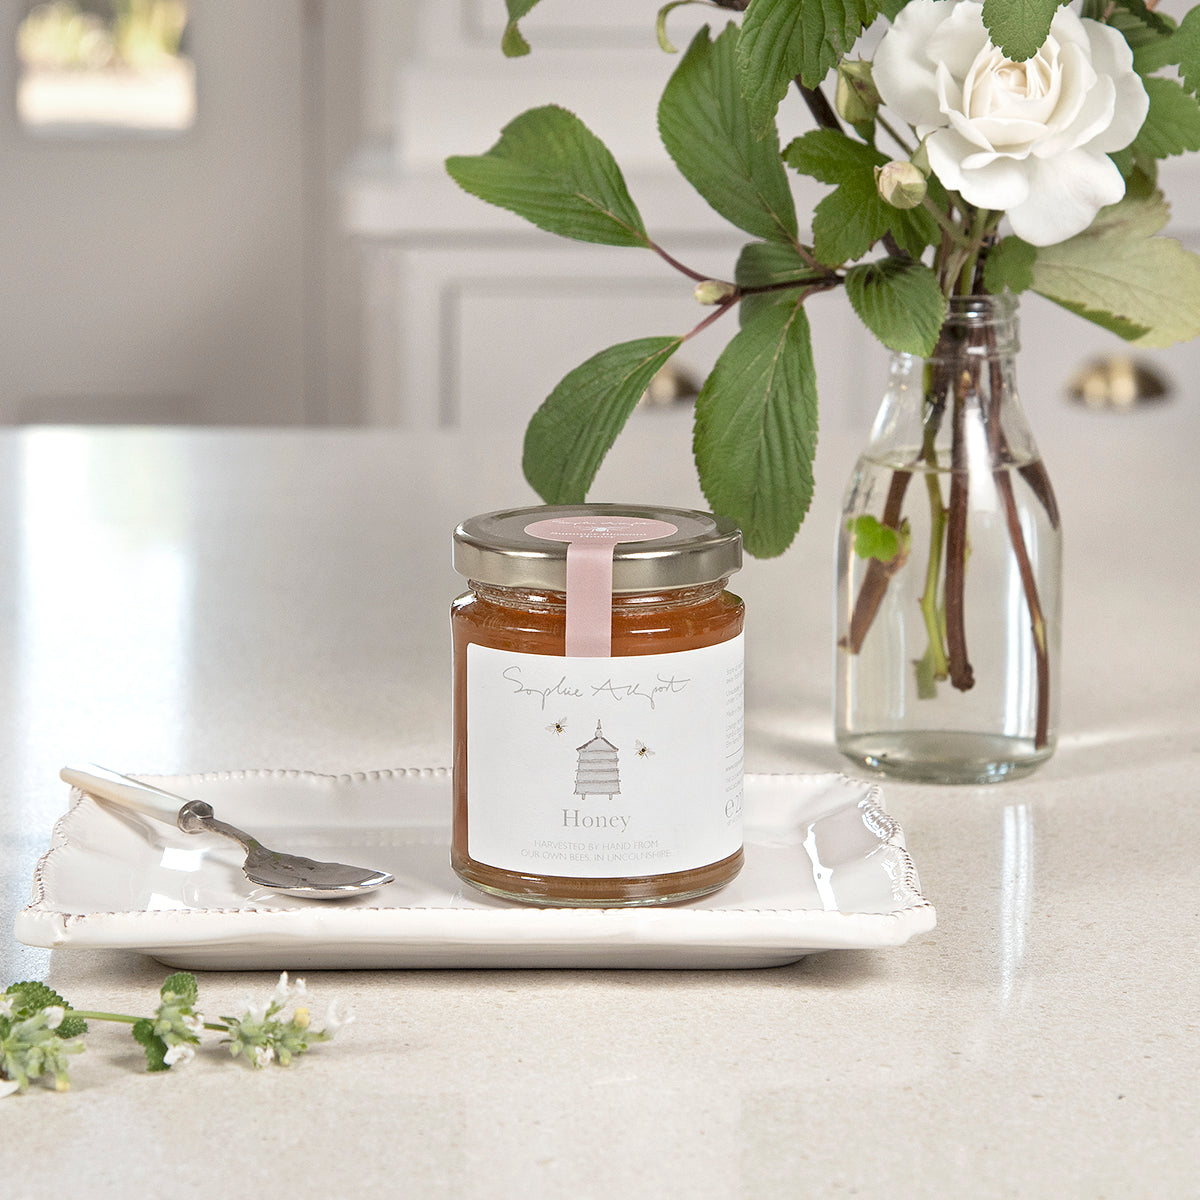 Summer Blossom British Honey by Sophie Allport